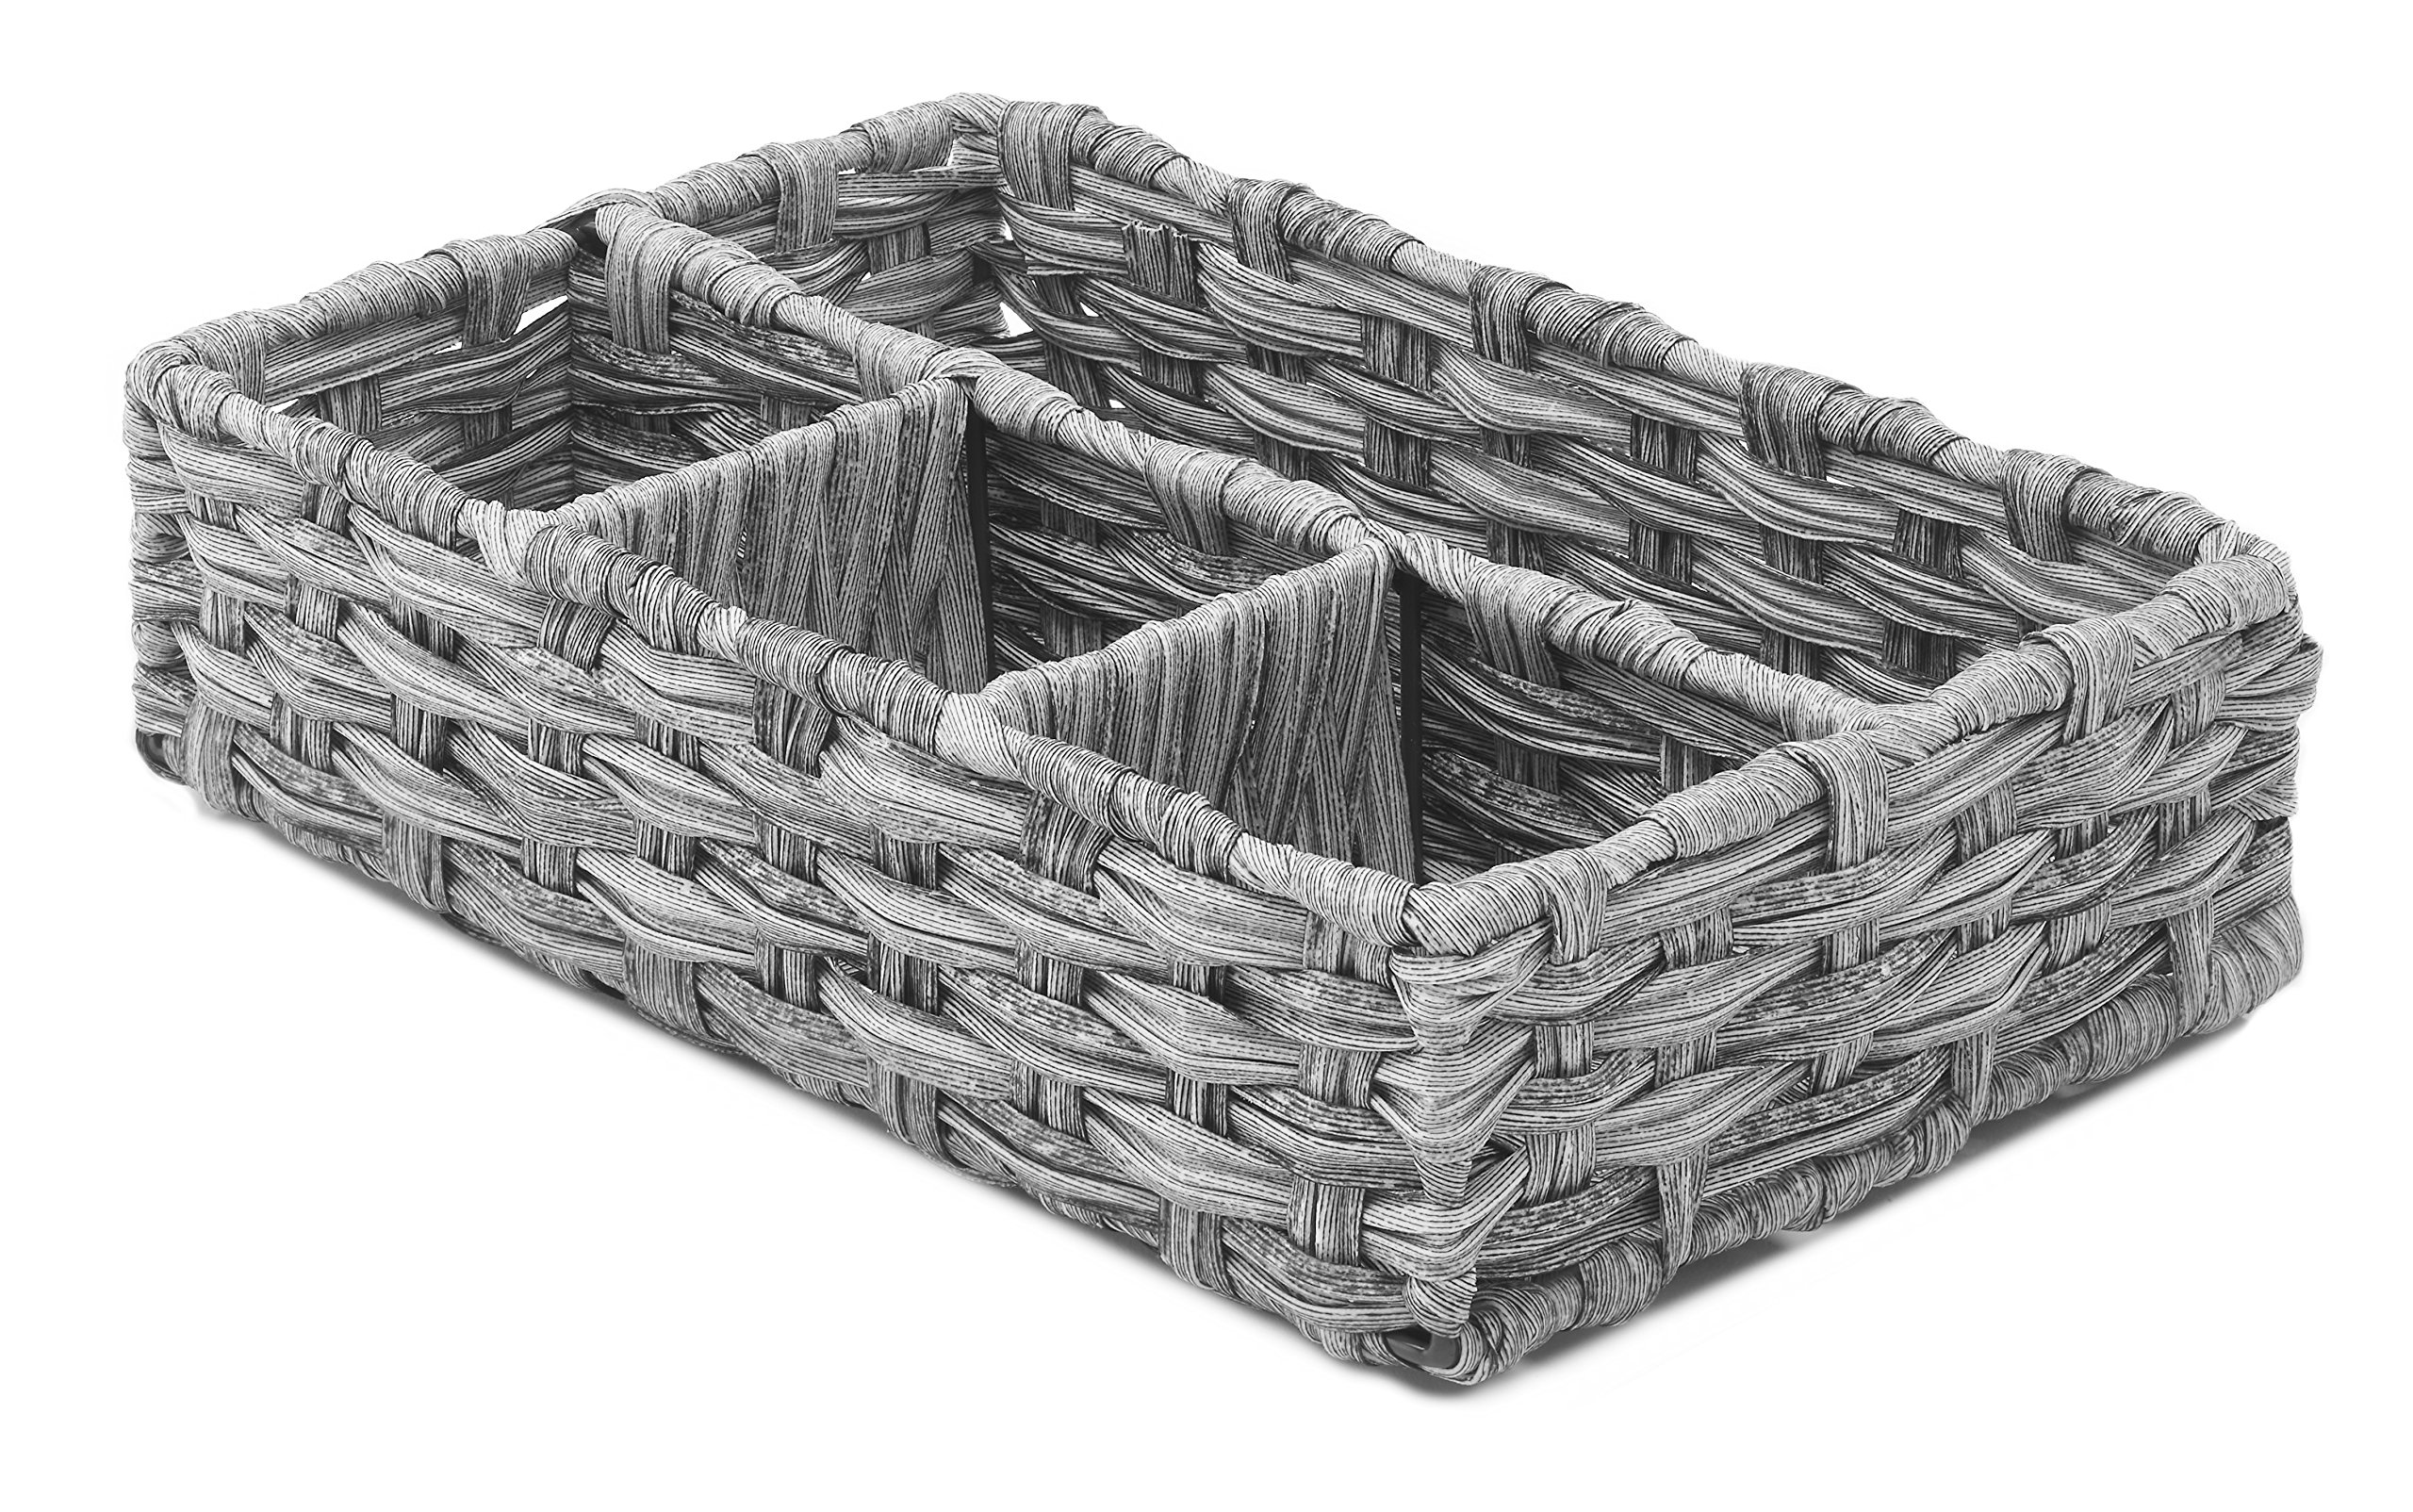 Whitmor Split Rattique 4 Section Tray Gray Wash by Whitmor